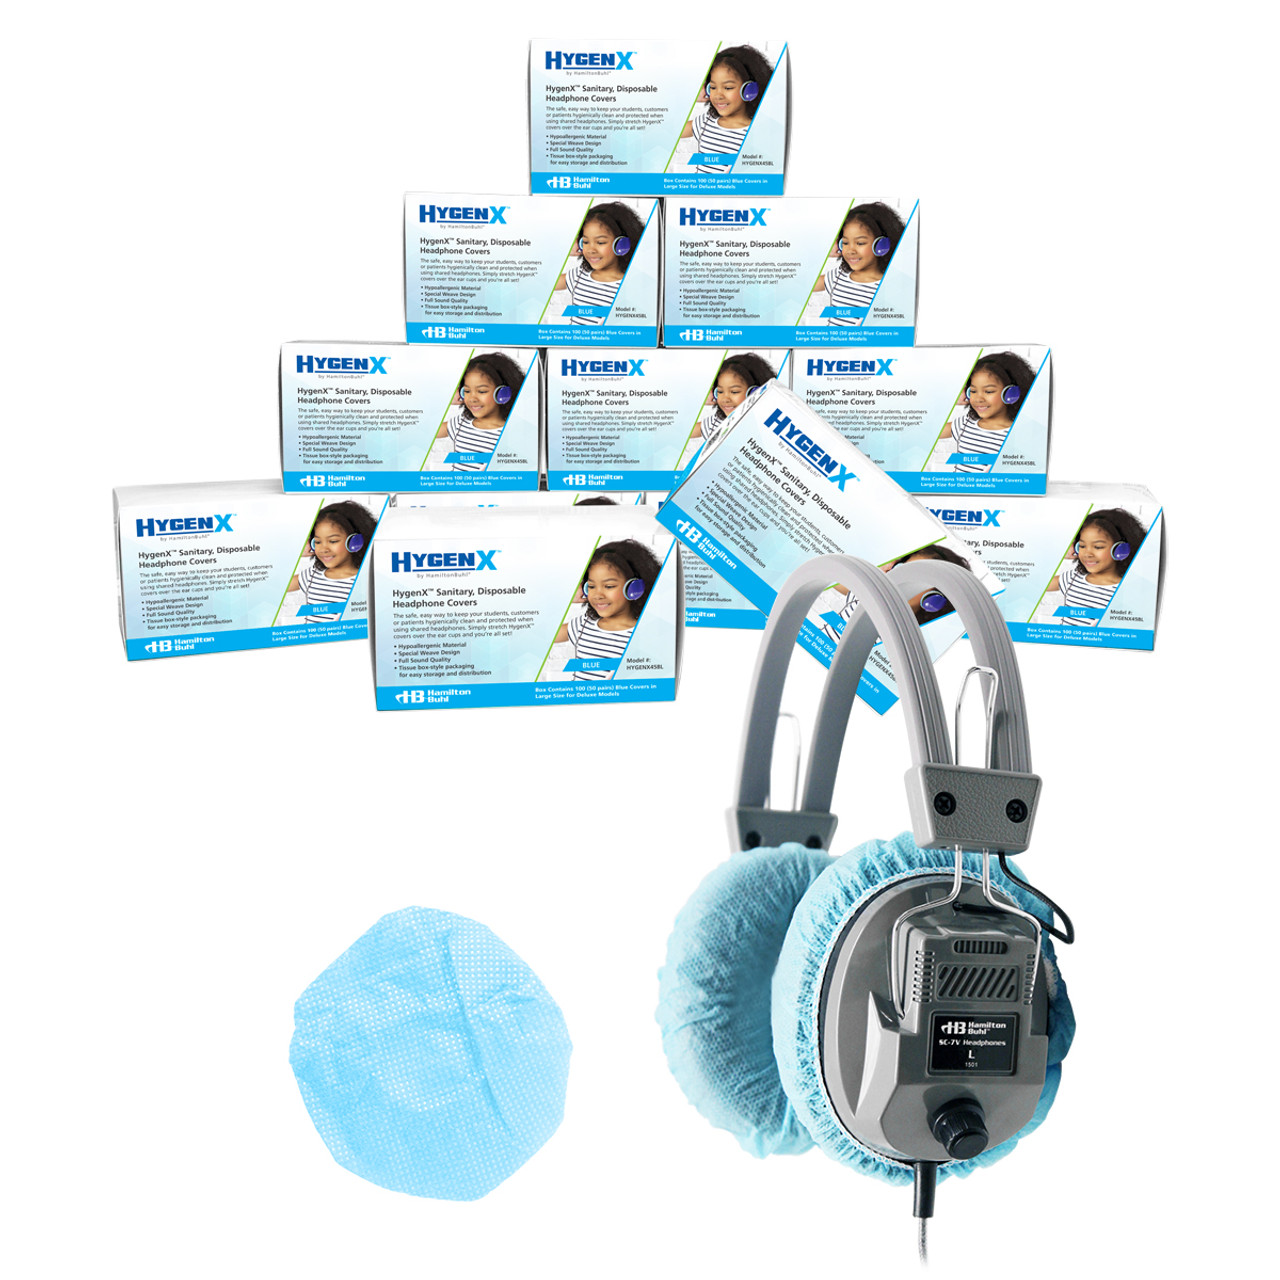 2.5 White, 50 Pairs Hamilton Buhl HygenX Sanitary Ear Cushion Covers for On-Ear Headphones /& Headsets